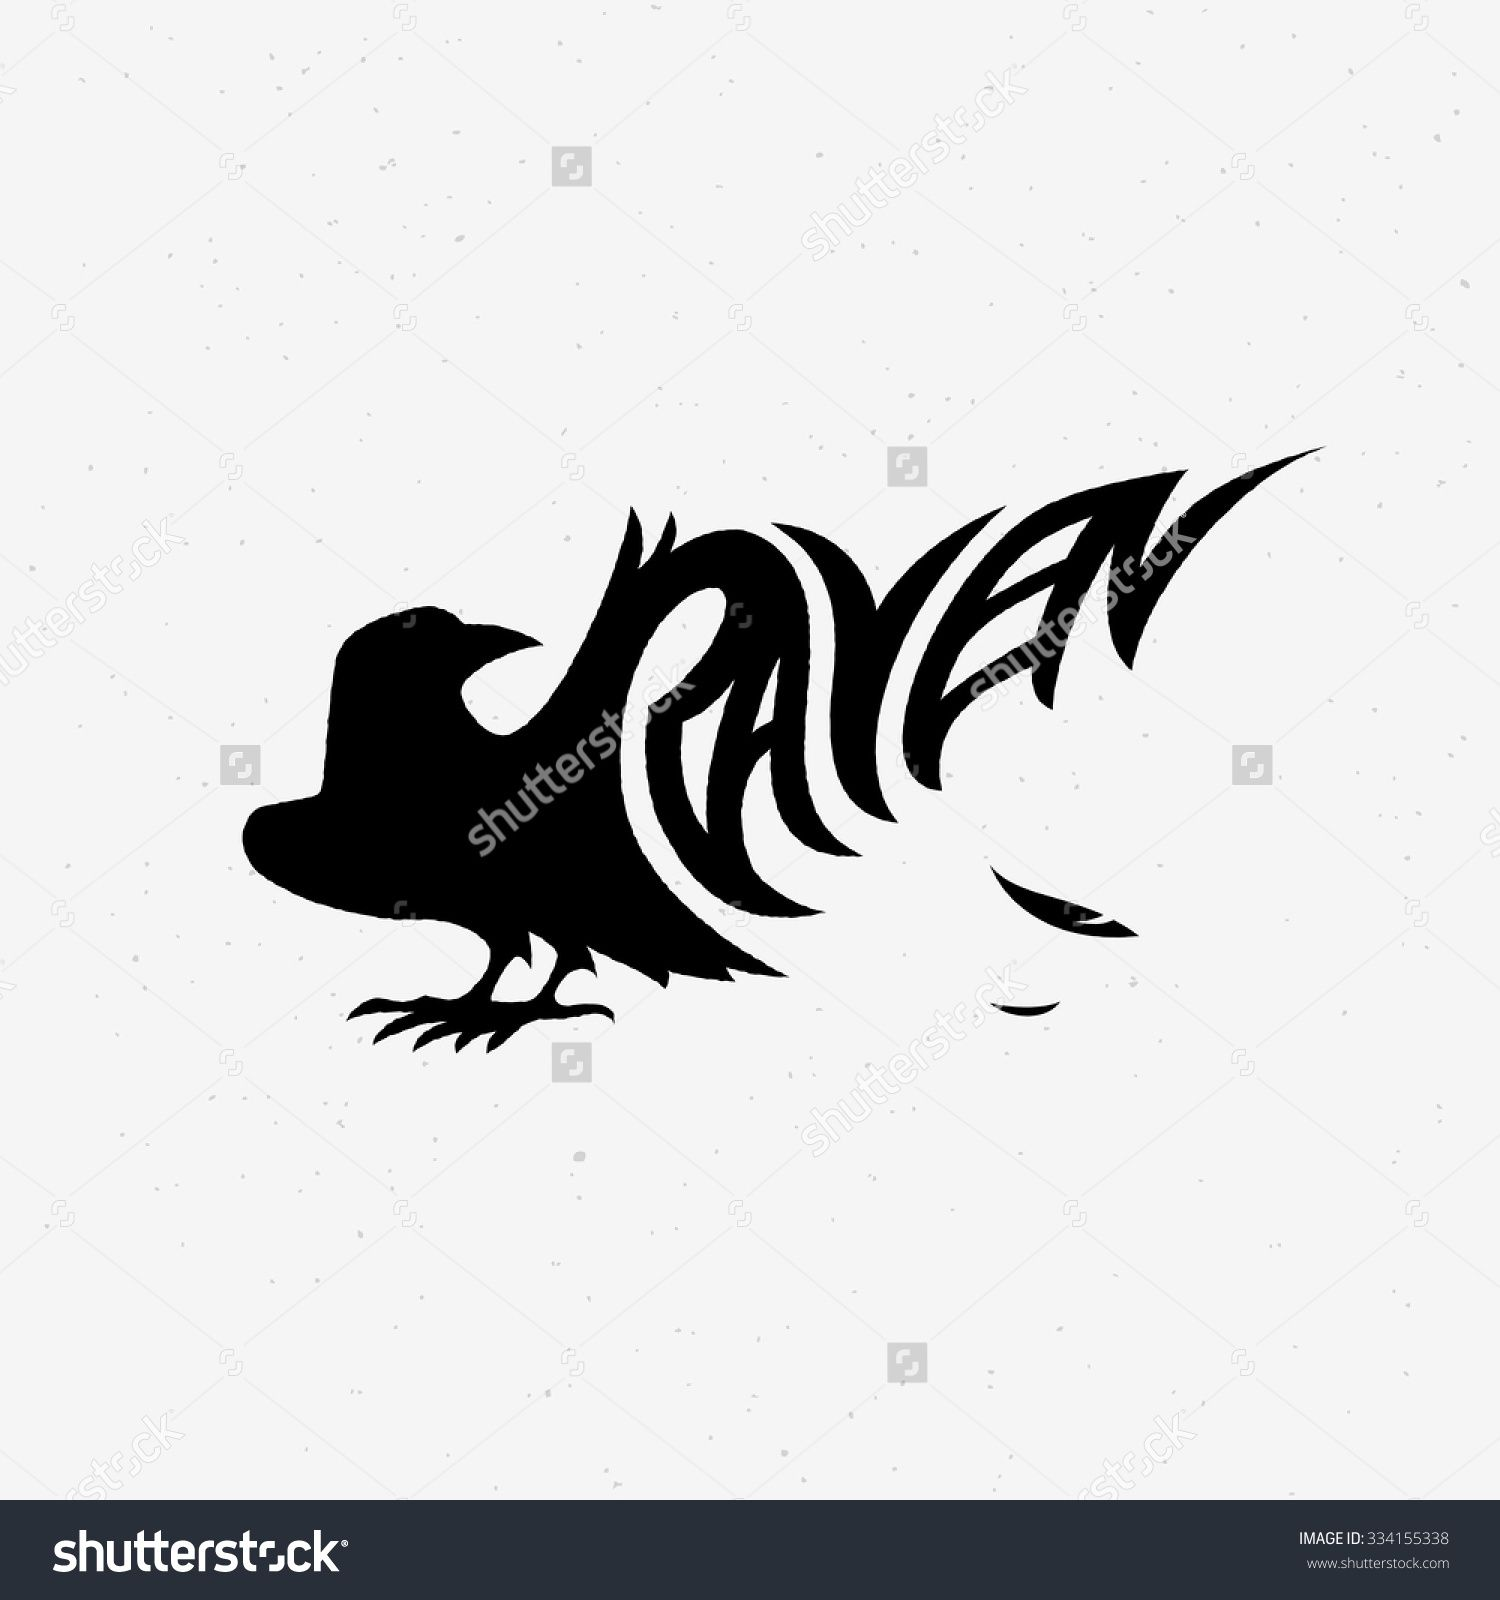 stock-vector-vector-illustration-with-raven-silhouette-design-template-for-badge-emblem-logo-insignia-sign-334155338.jpg (1500×1600)